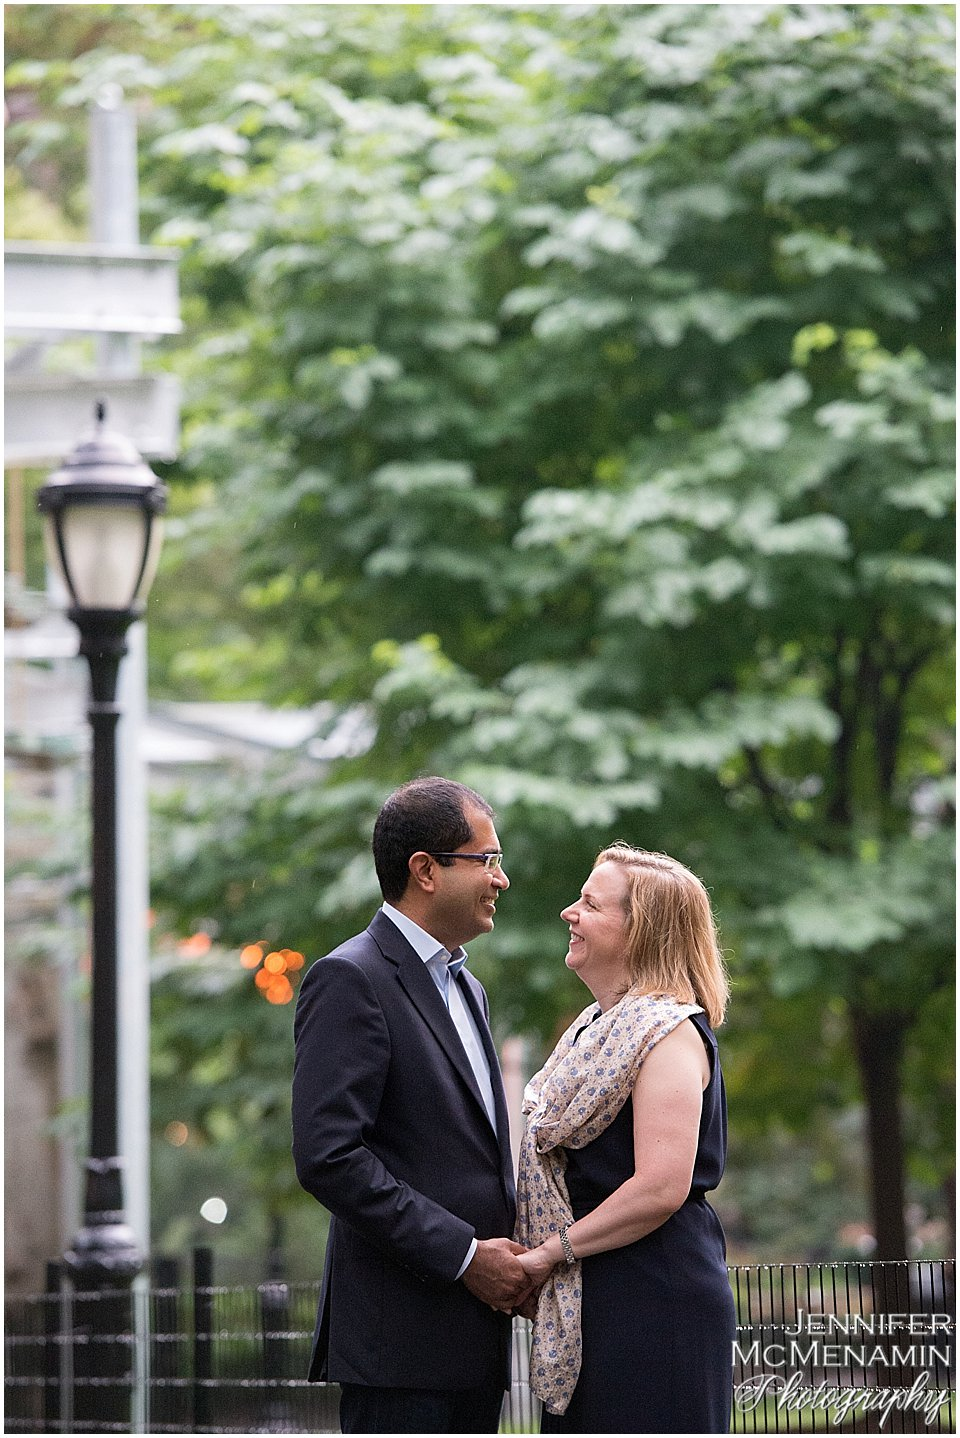 007-AkehurstShetty_0020-0007_Jennifer-McMenamin-Photography-New-York-City-engagement-photos